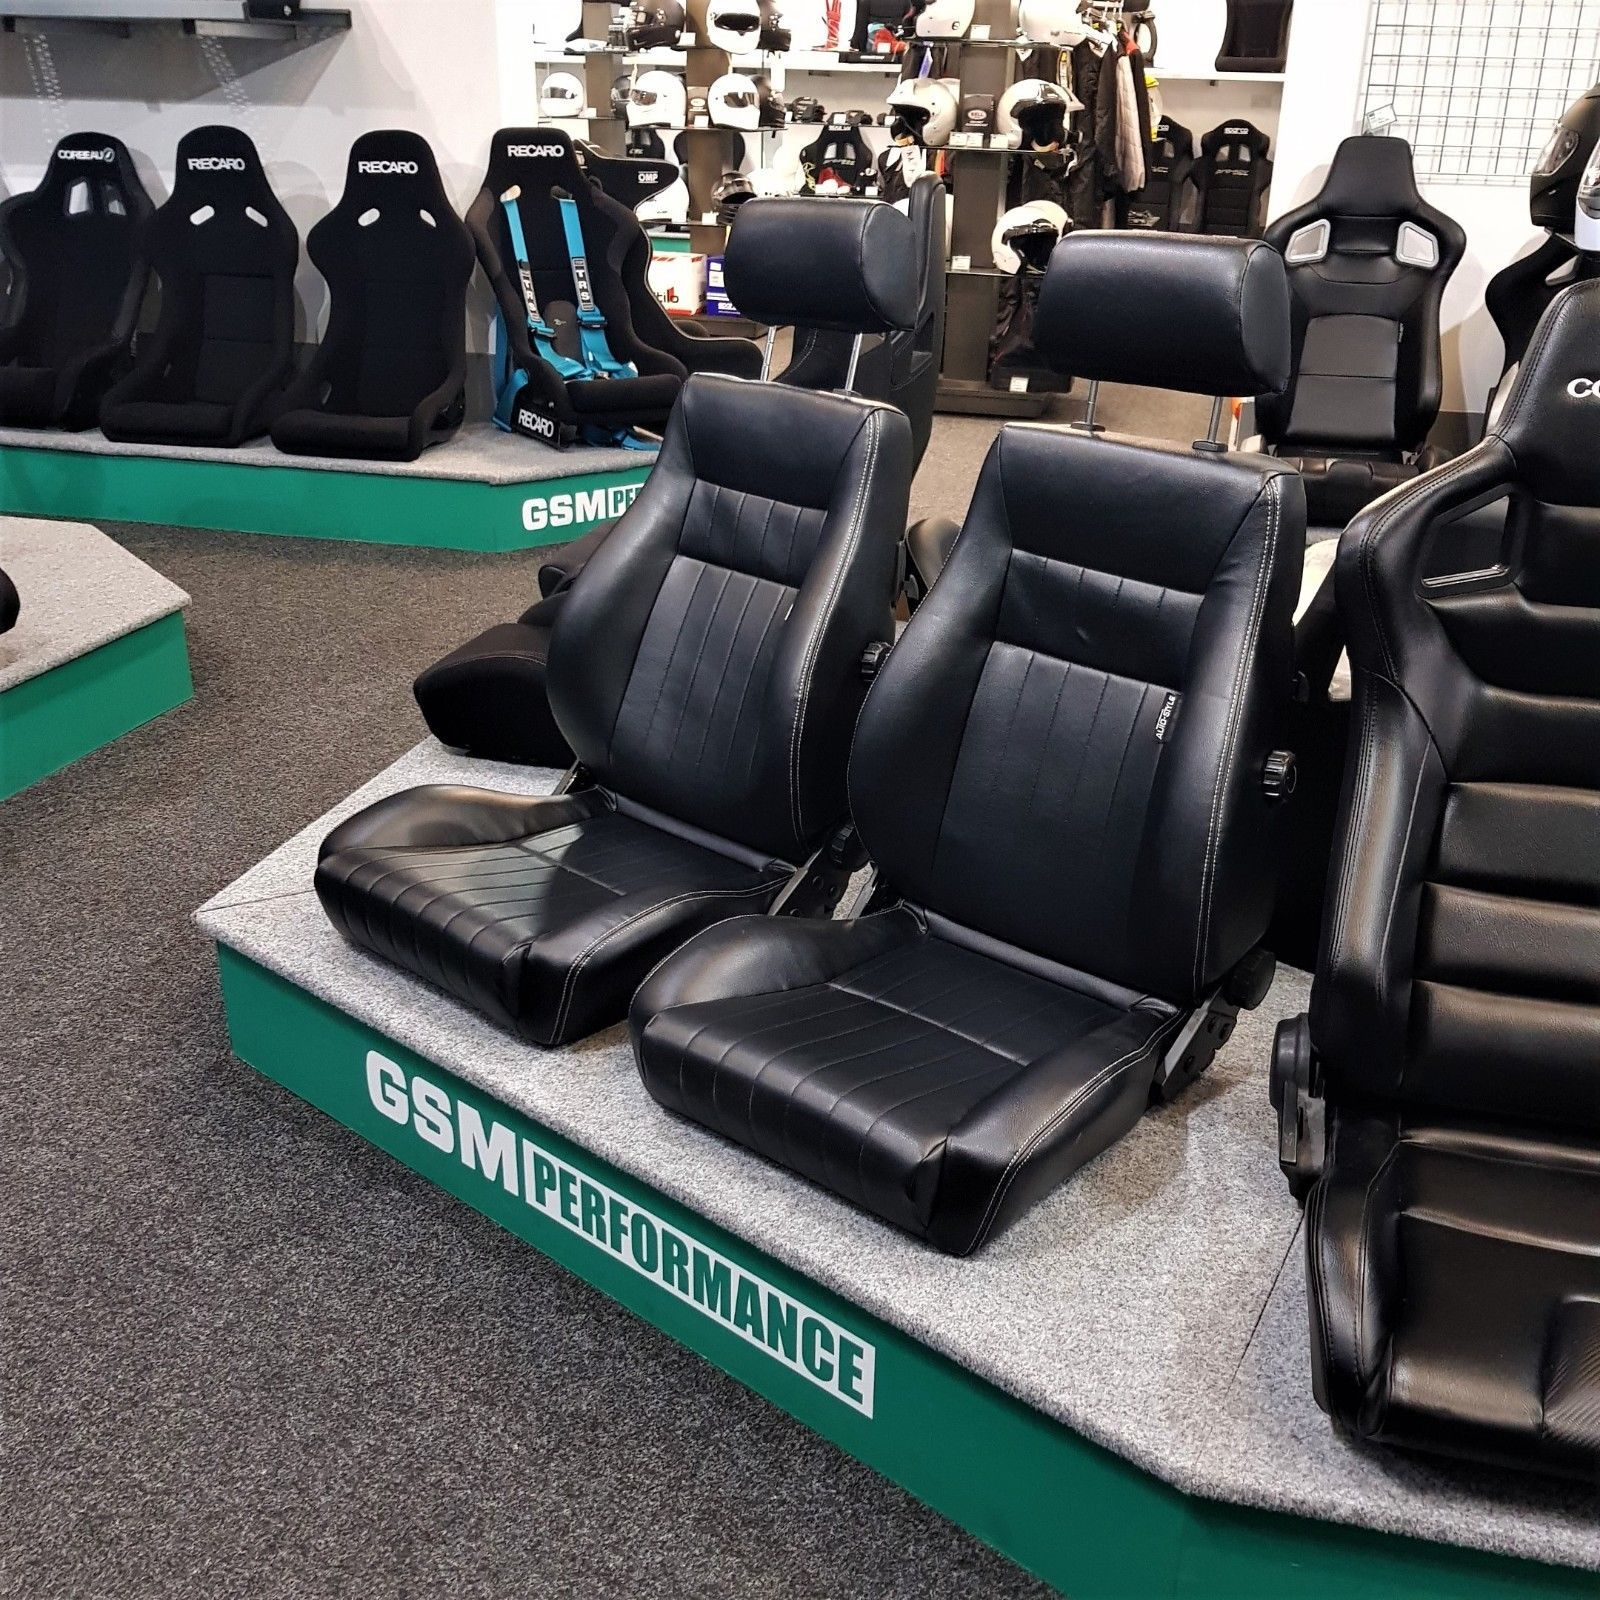 These stunning Type Retro seats have just had a price drop